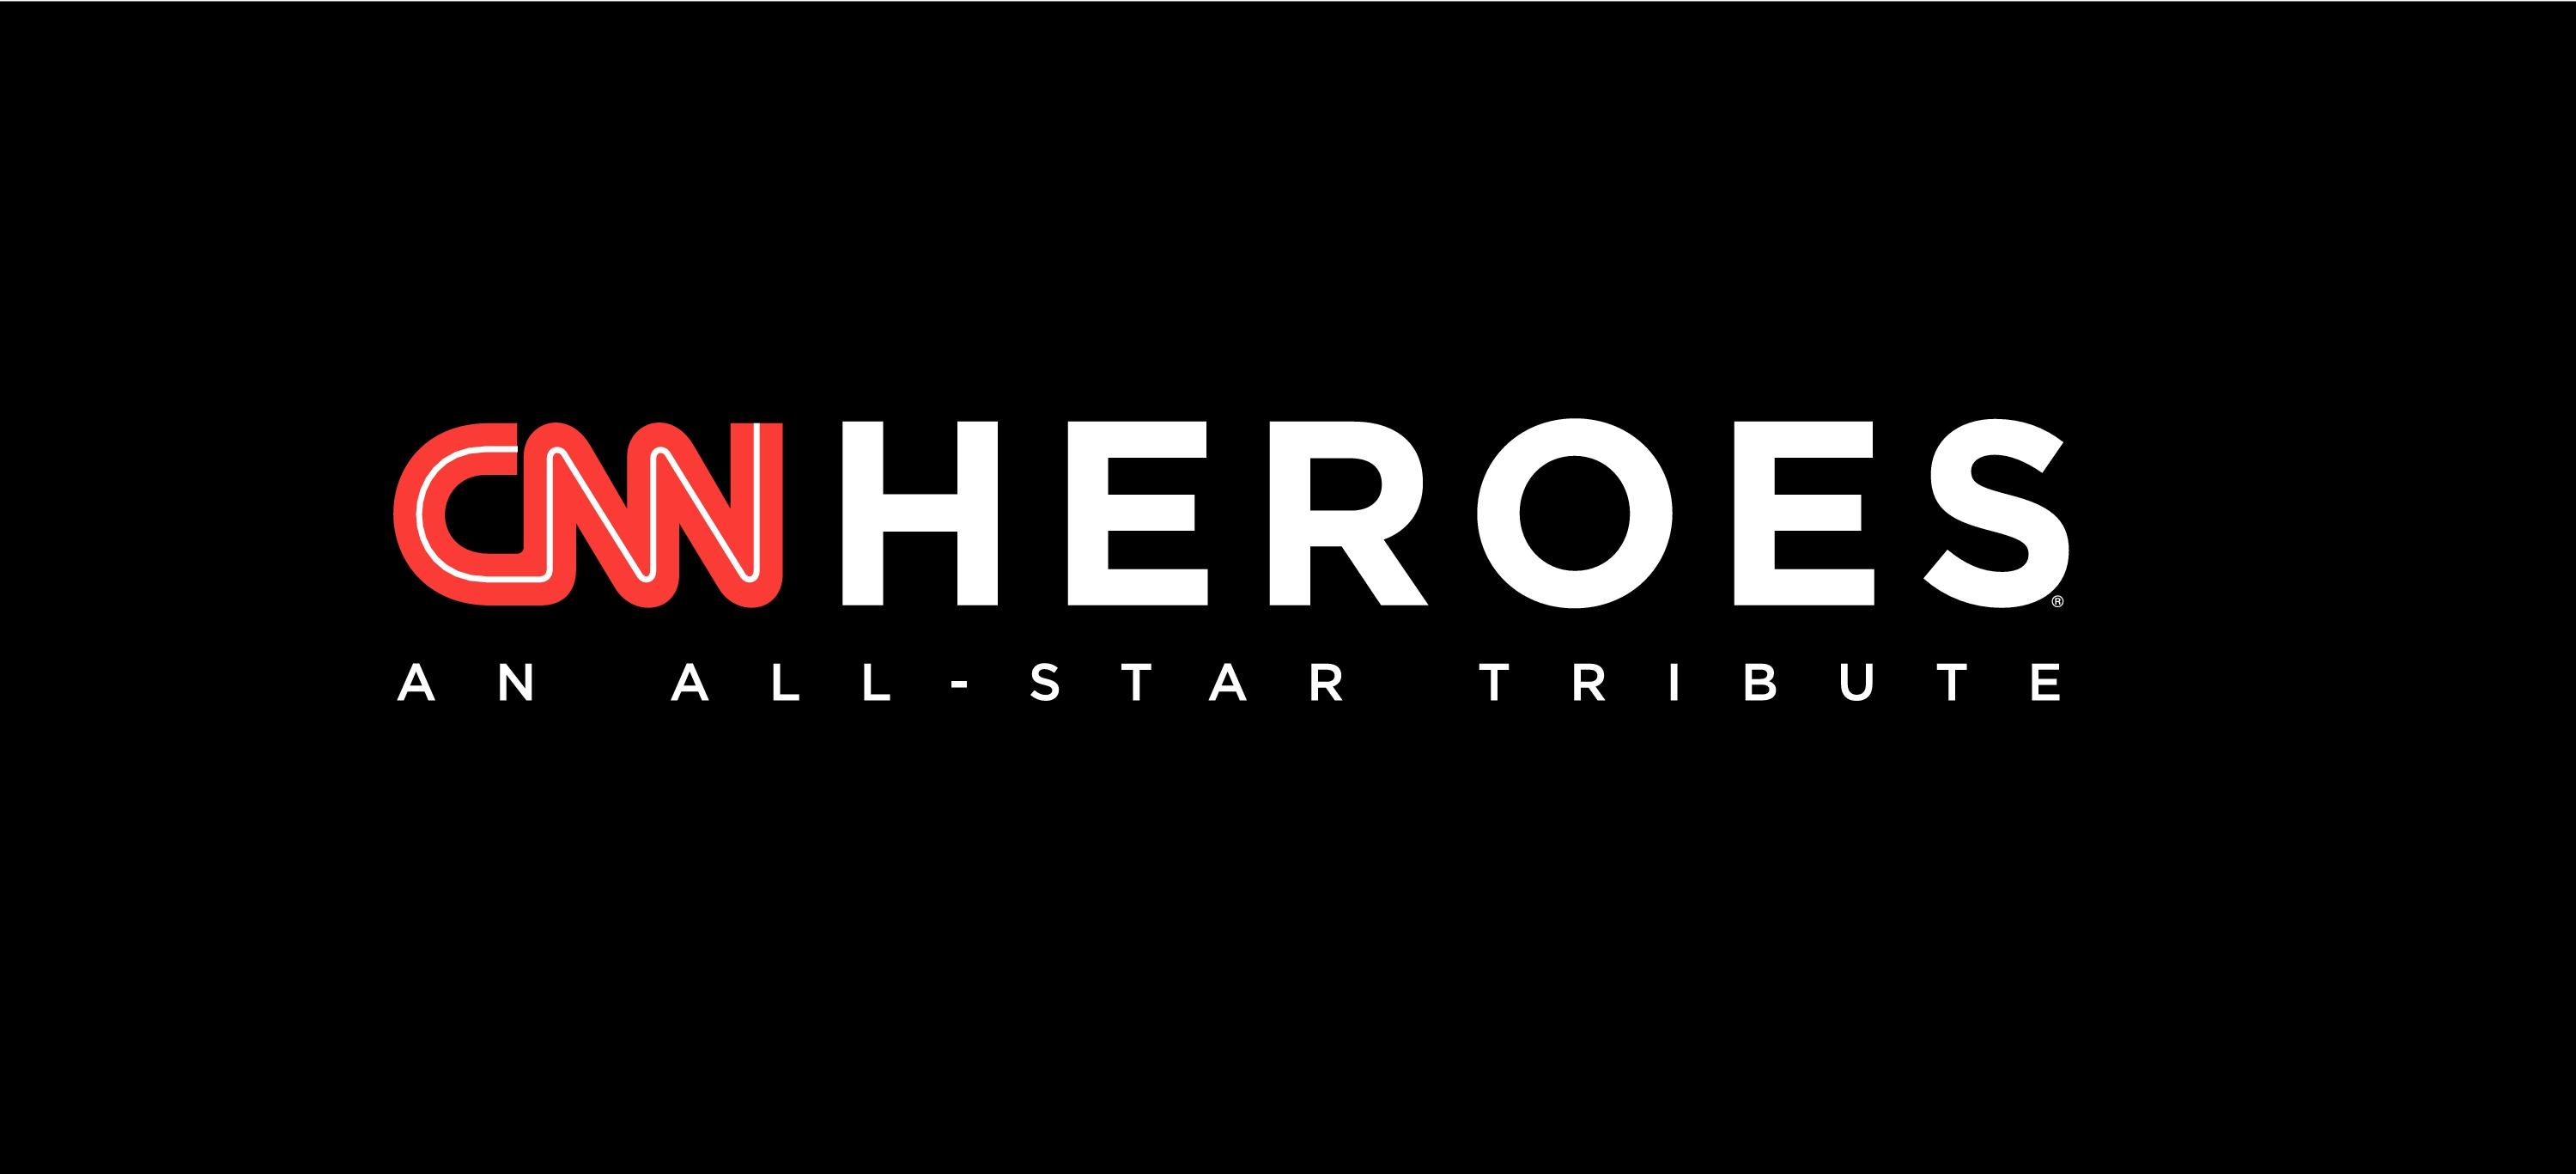 "J.R. Martinez, will.i.am, Christy Turlington Burns, Kurt Warner Participate in 5th Annual ""CNN Heroes: An All-Star Tribute"" LIVE on Dec. 11 at 8PM"